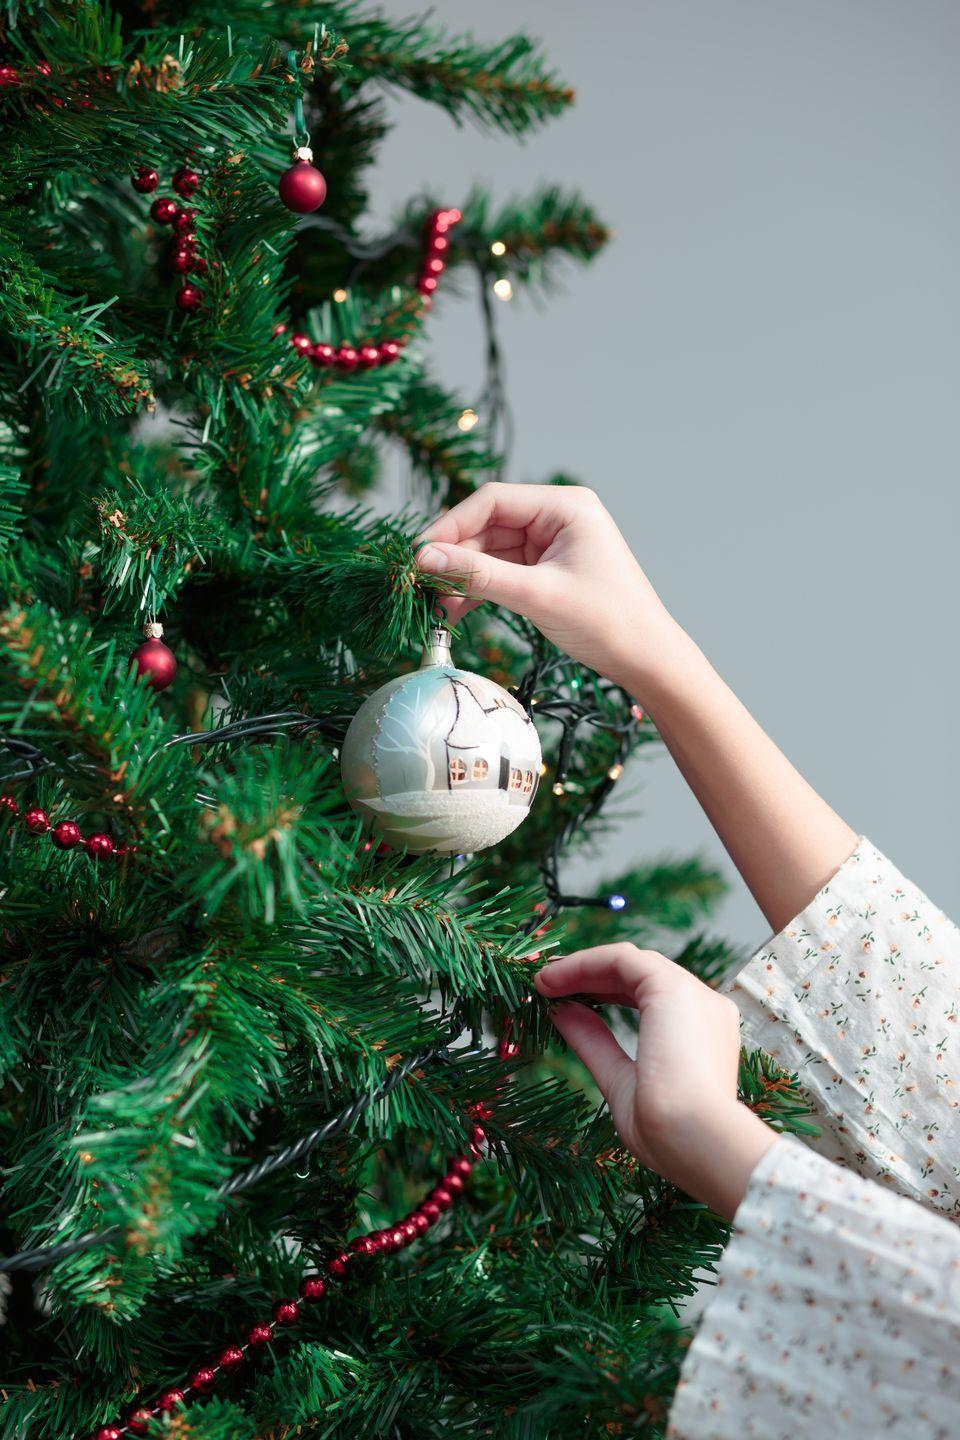 """<p>You likely already have """"decorate the tree"""" on your family's Christmas bucket list, but you can add another layer of excitement to this activity: Give each kid a mini spruce for their room and encourage them to come up with a <a href=""""https://www.oprahmag.com/life/g29114554/christmas-tree-decorating-ideas/"""" rel=""""nofollow noopener"""" target=""""_blank"""" data-ylk=""""slk:creative theme for trimming it"""" class=""""link rapid-noclick-resp"""">creative theme for trimming it</a>. </p><p><a class=""""link rapid-noclick-resp"""" href=""""https://www.oprahmag.com/entertainment/g28772609/harry-potter-ornaments/"""" rel=""""nofollow noopener"""" target=""""_blank"""" data-ylk=""""slk:SHOP THEMED ORNAMENTS"""">SHOP THEMED ORNAMENTS</a></p>"""